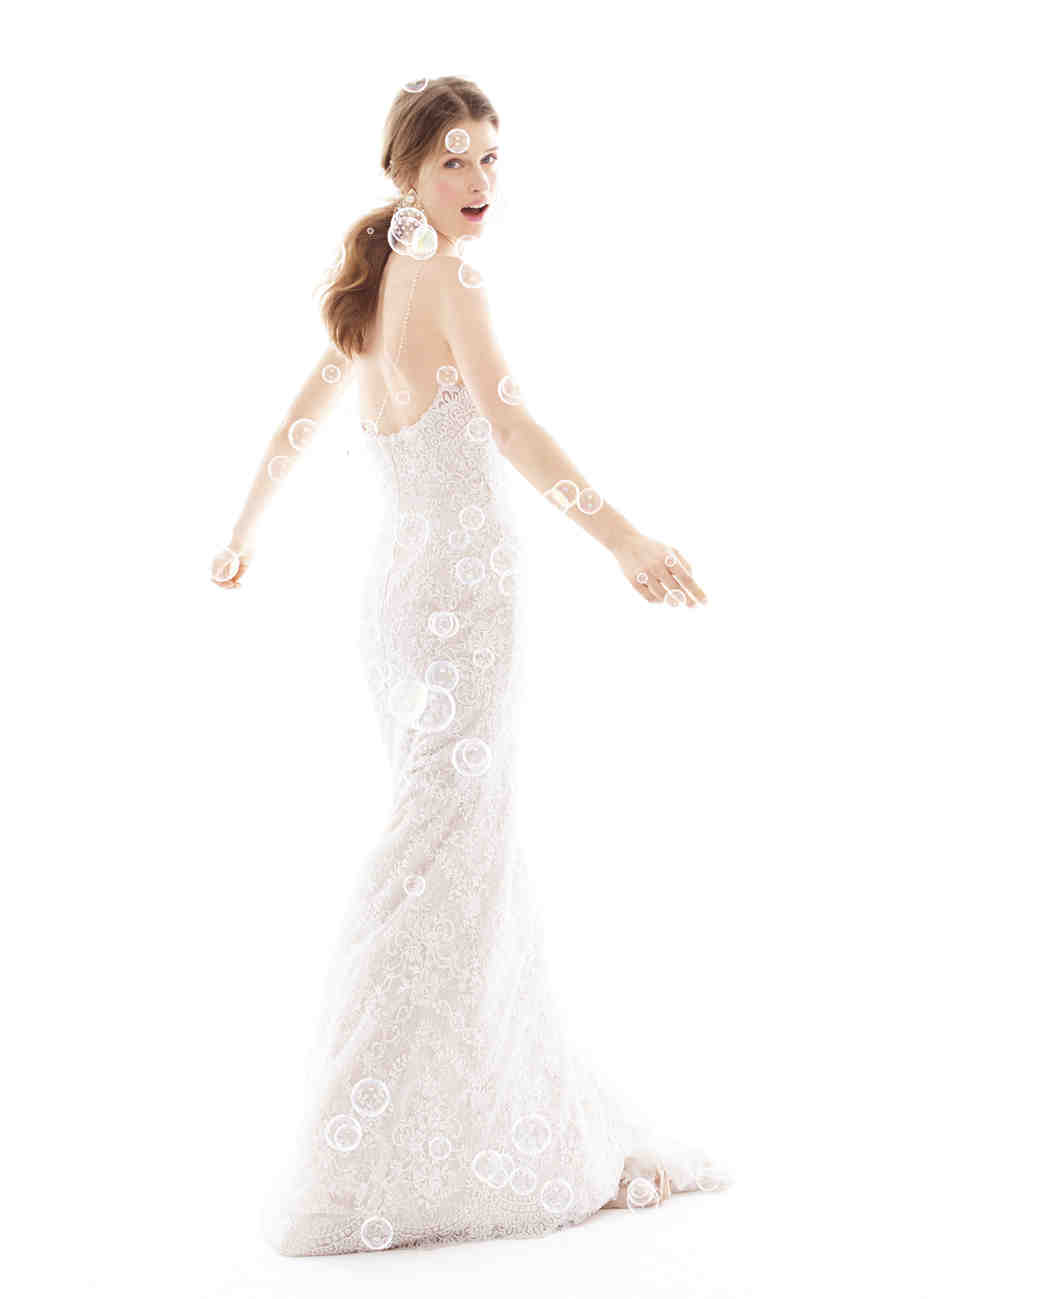 bubbles-wedding-dress-262-d111904.jpg